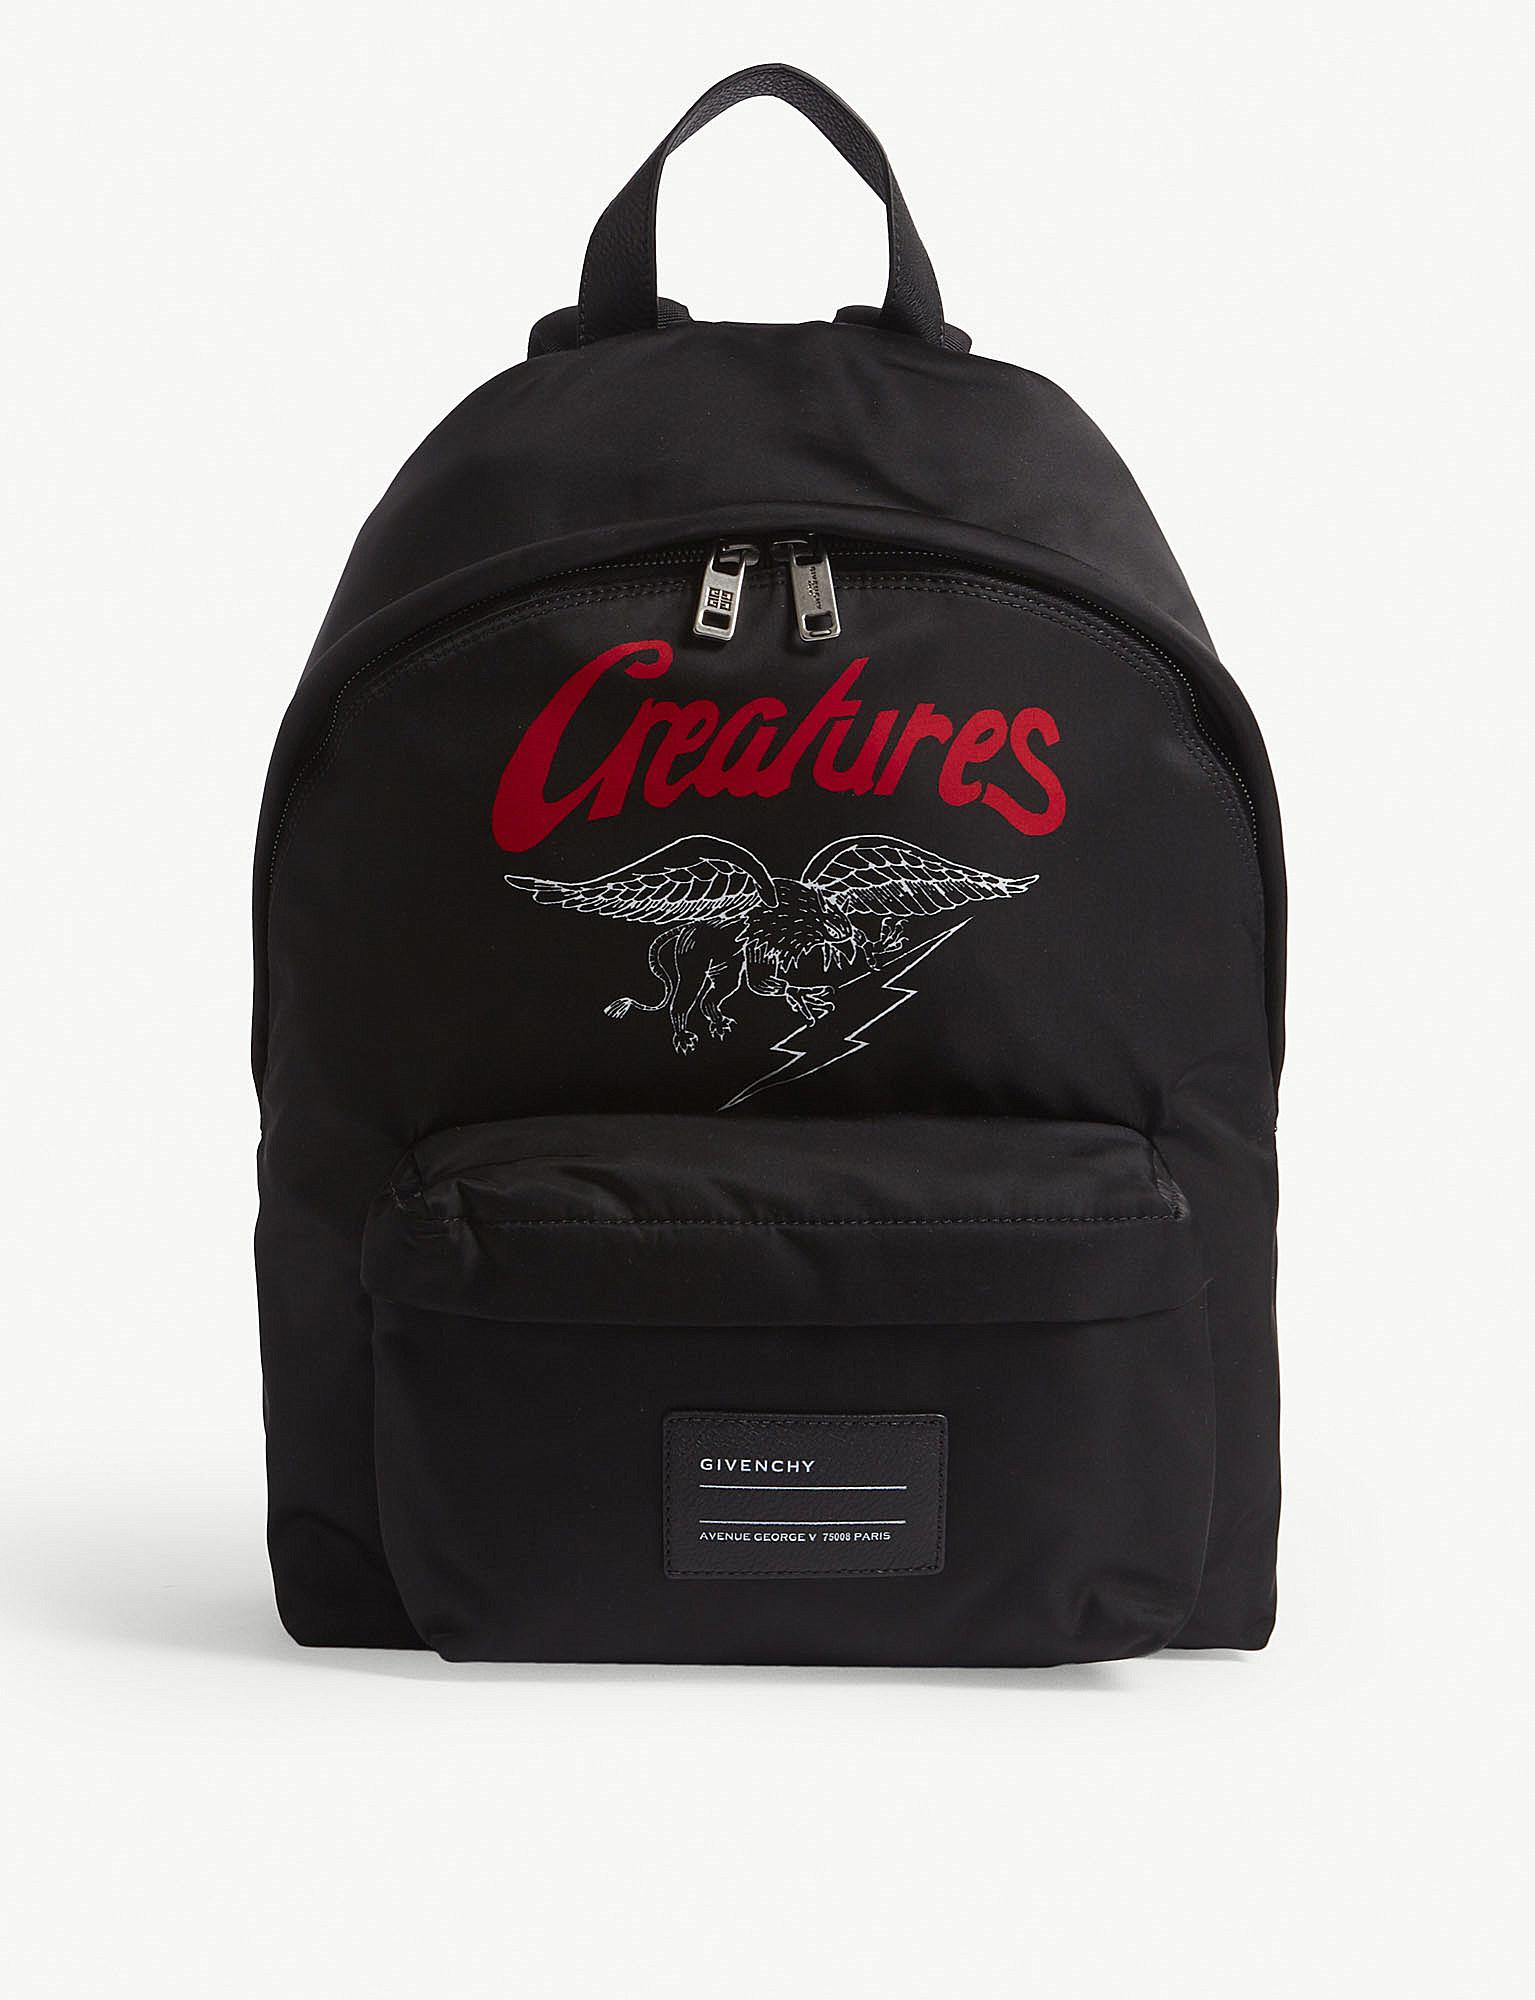 Givenchy Creatures motif backpack NypCKyCwb